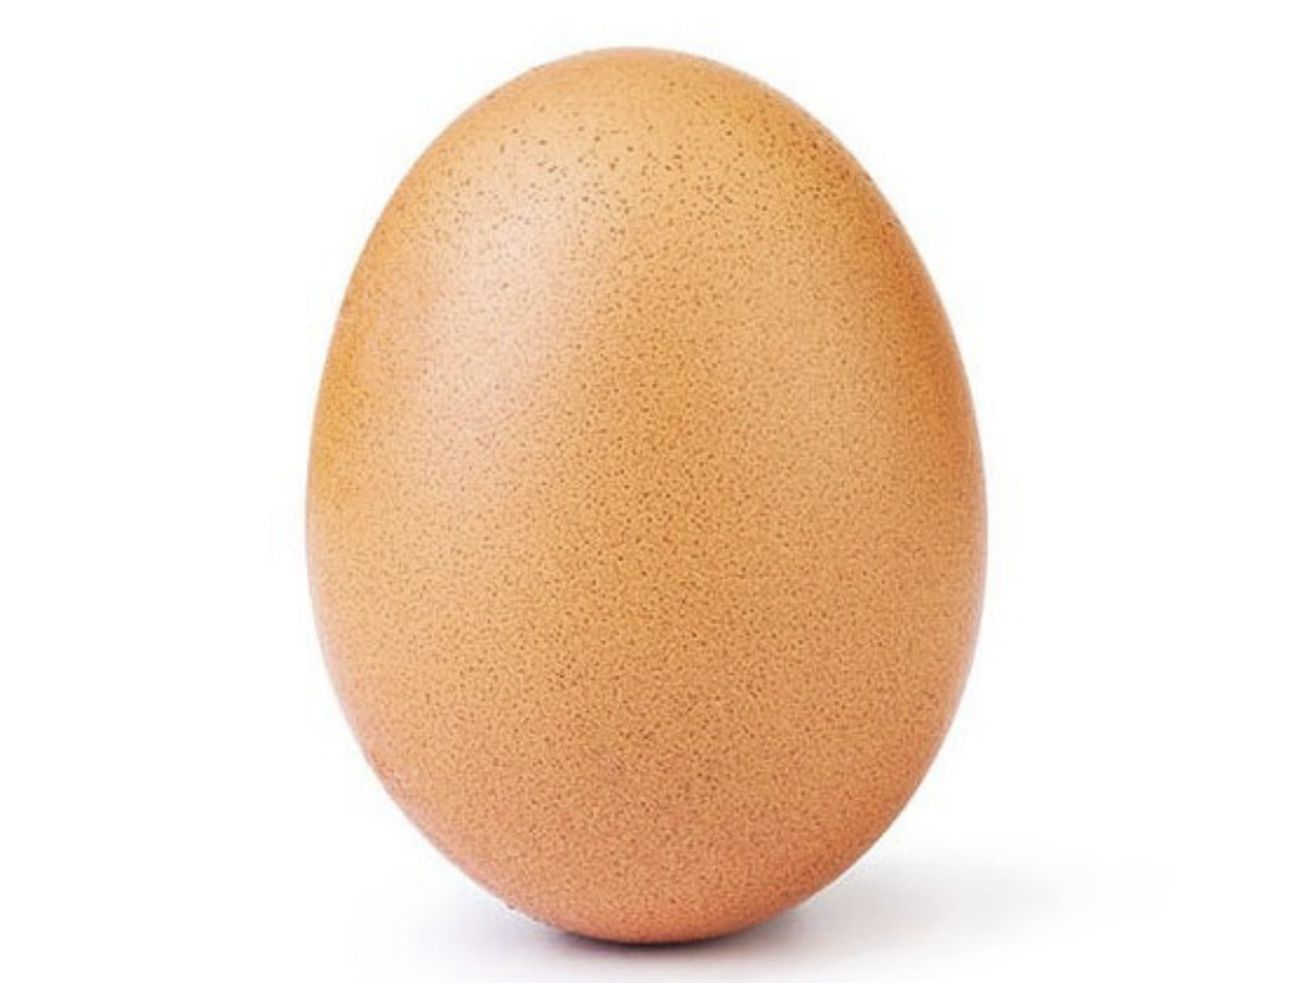 Recode Daily: The bizarre story of the most popular photo on Instagram: An egg